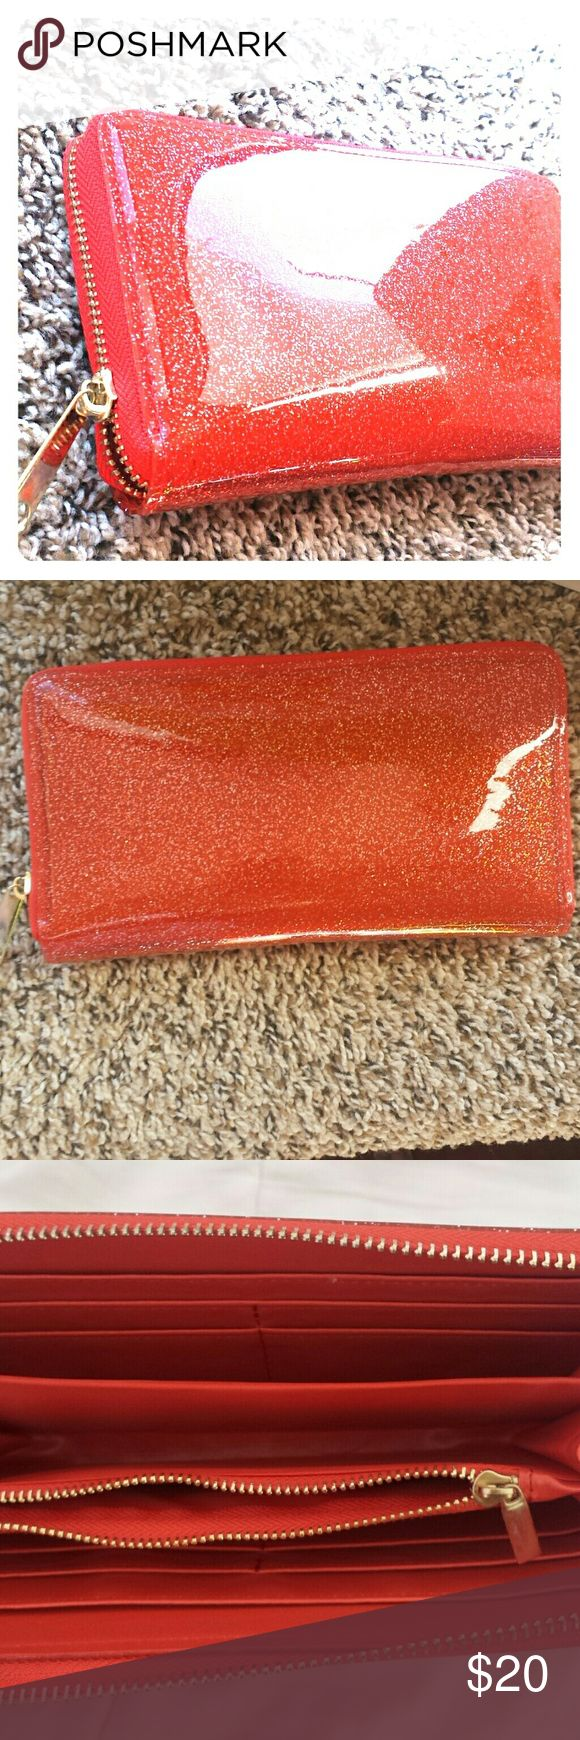 Melie Bianco Red sparkly Melie Bianco wallet. I bought 2. I kept one (first 3 pics) and I'm selling the other (last pic). LOVE this wallet. It has 8 card slots, 5 compartments for cash, receipts, change, etc. I always get complements on this one! Melie Bianco Bags Wallets